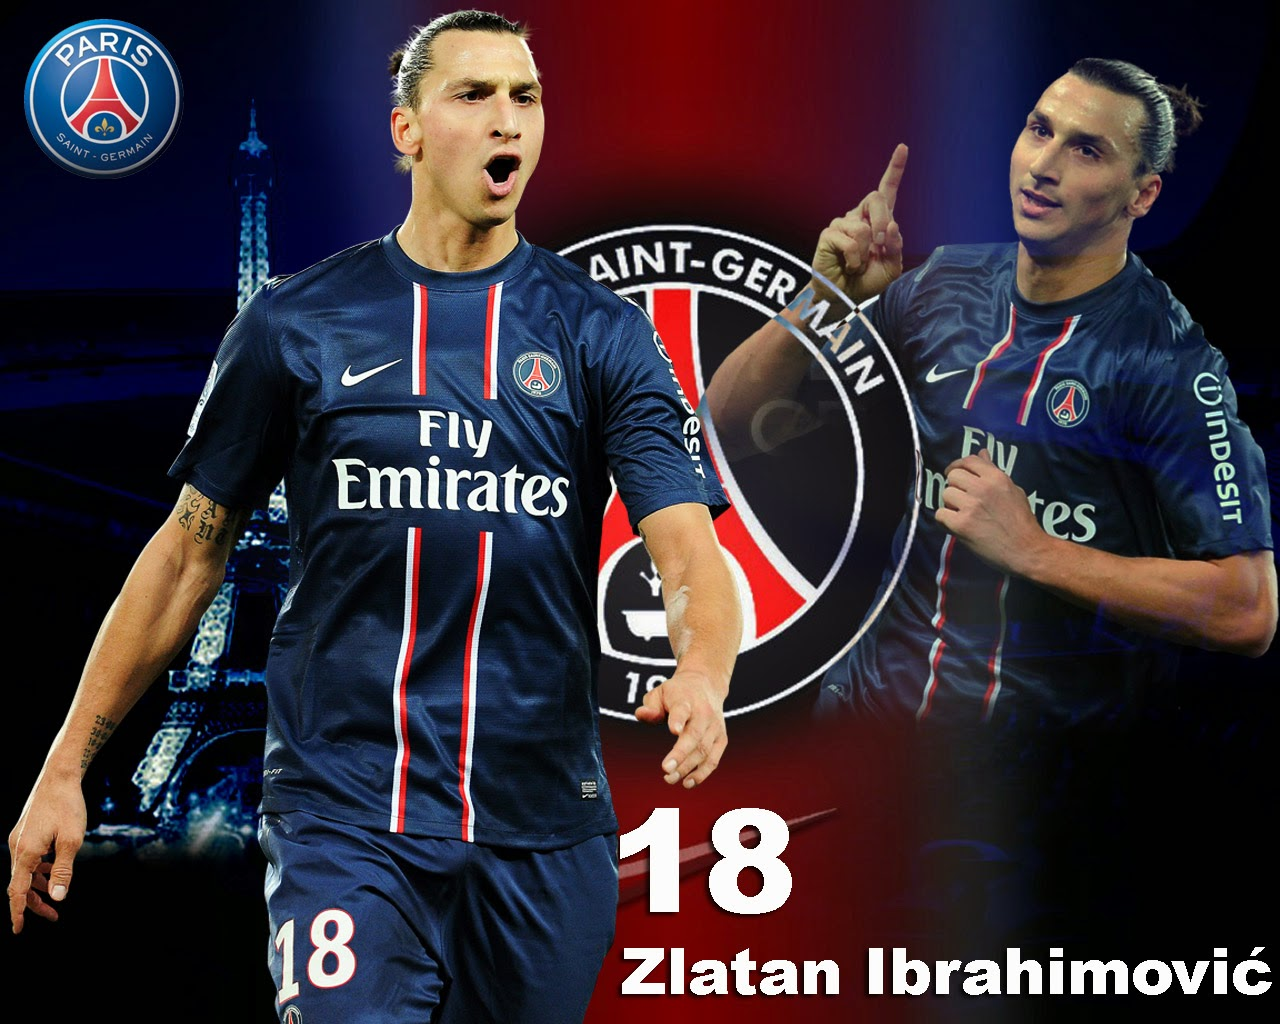 The Best Zlatan Ibrahimovic 2013 Wallpaper